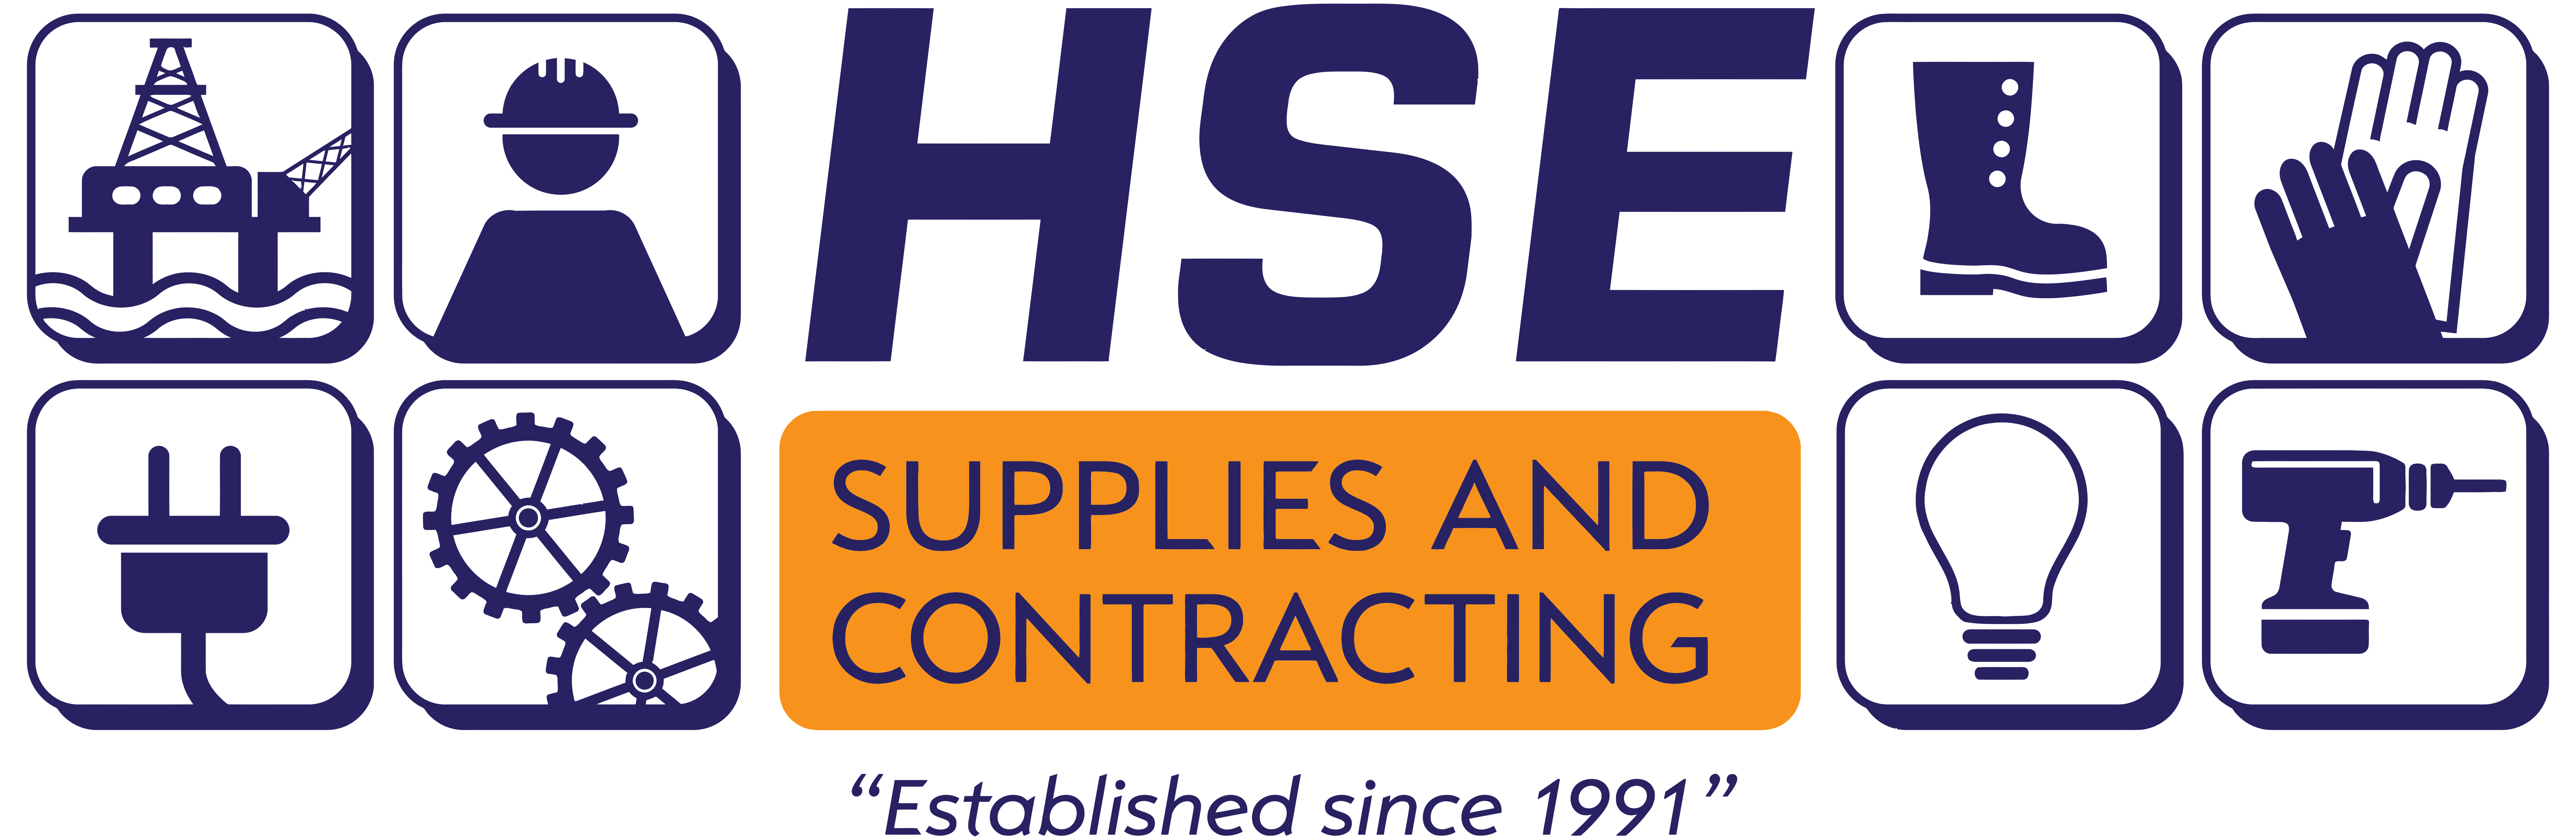 HSE Supplies and Contracting